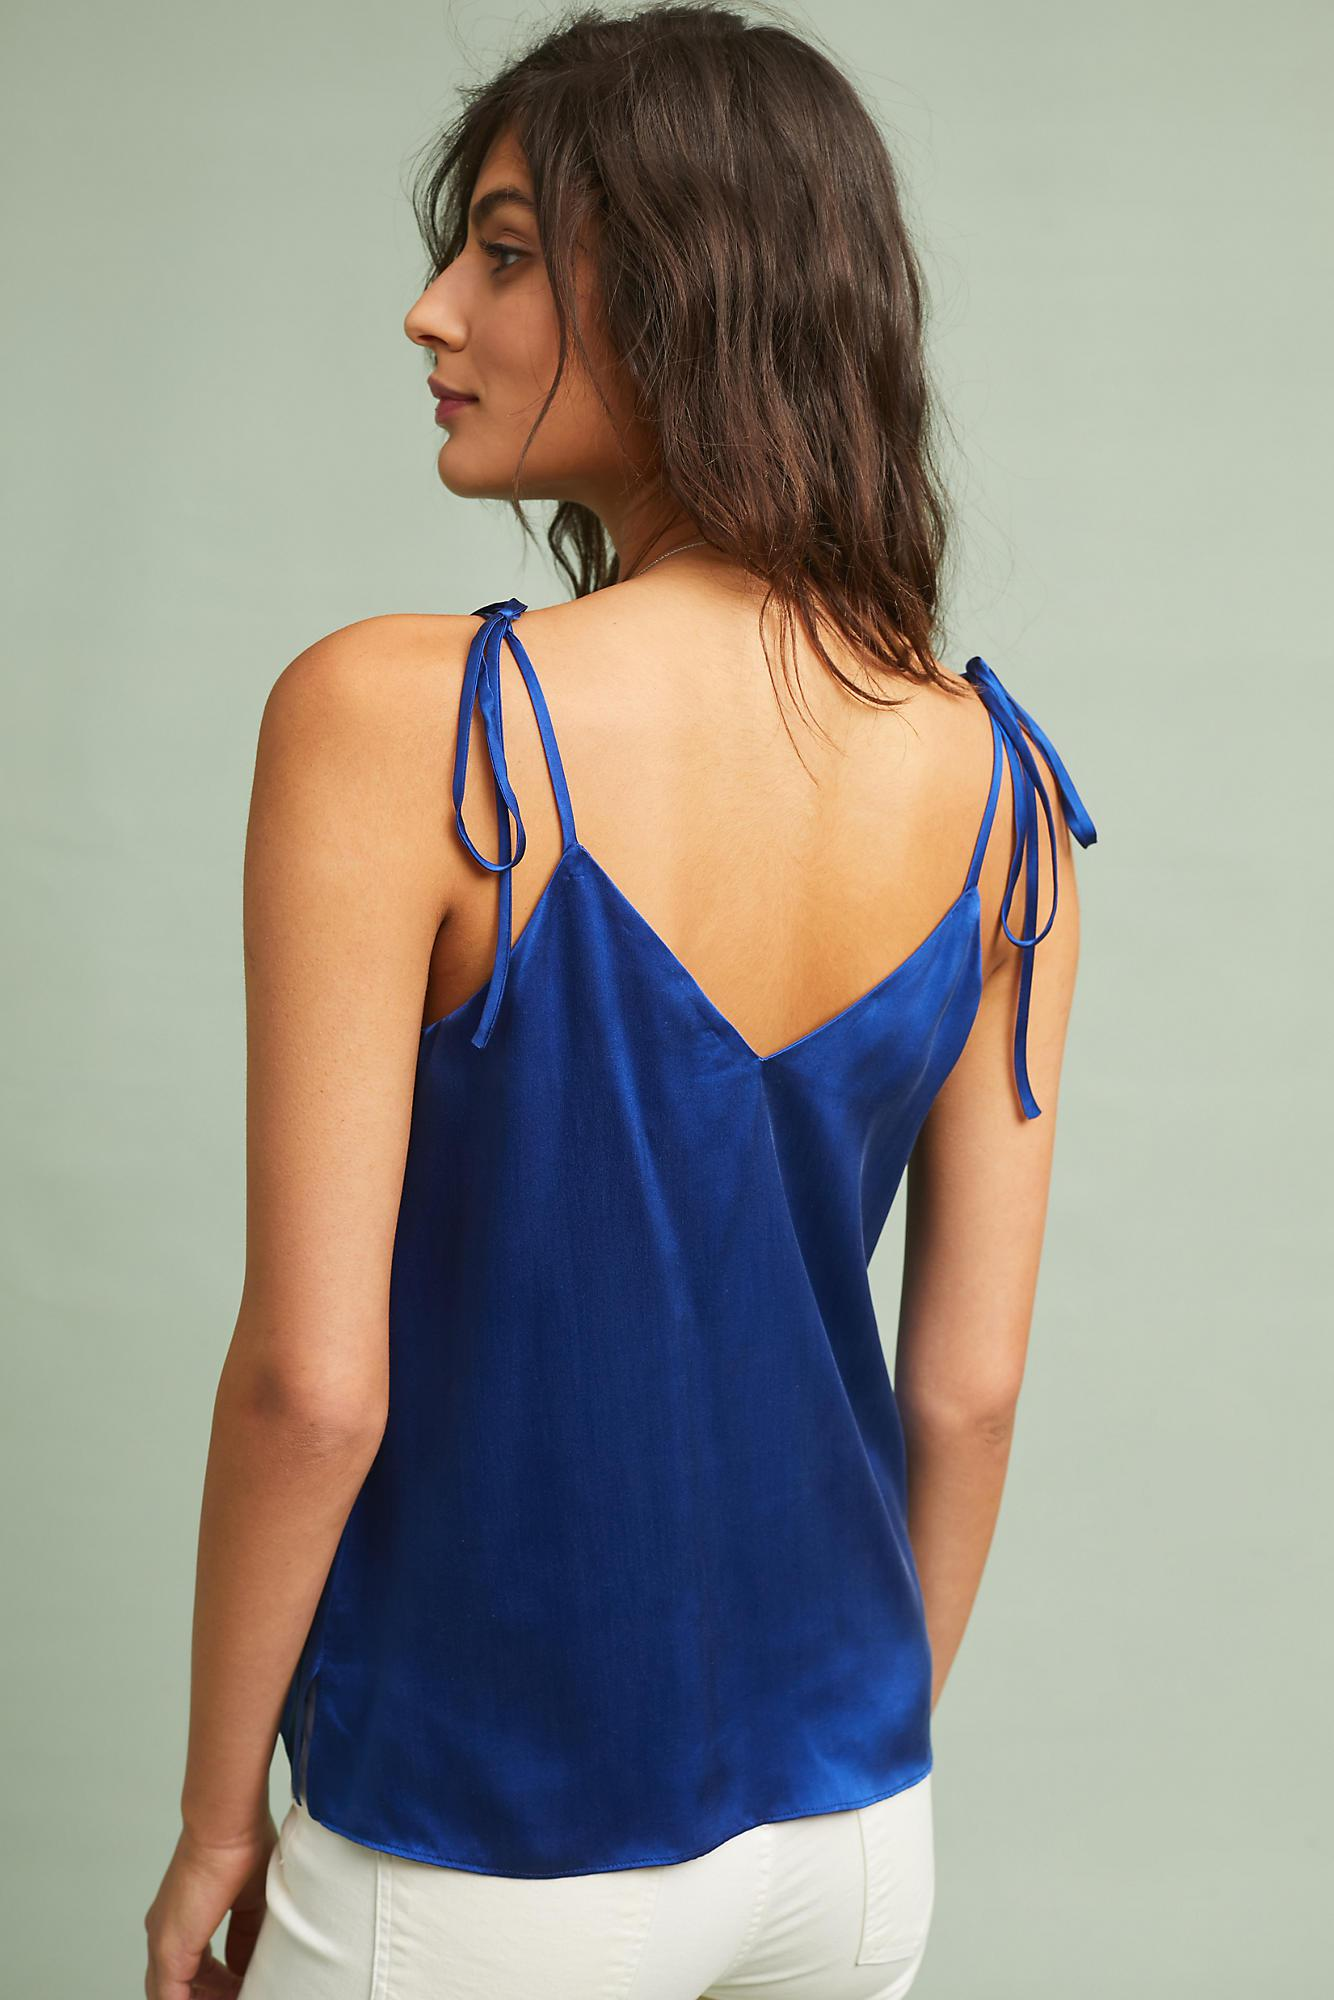 Outlet Extremely Sally Silk Cami Cami NYC Latest Discount Sast hp0dZj4eq